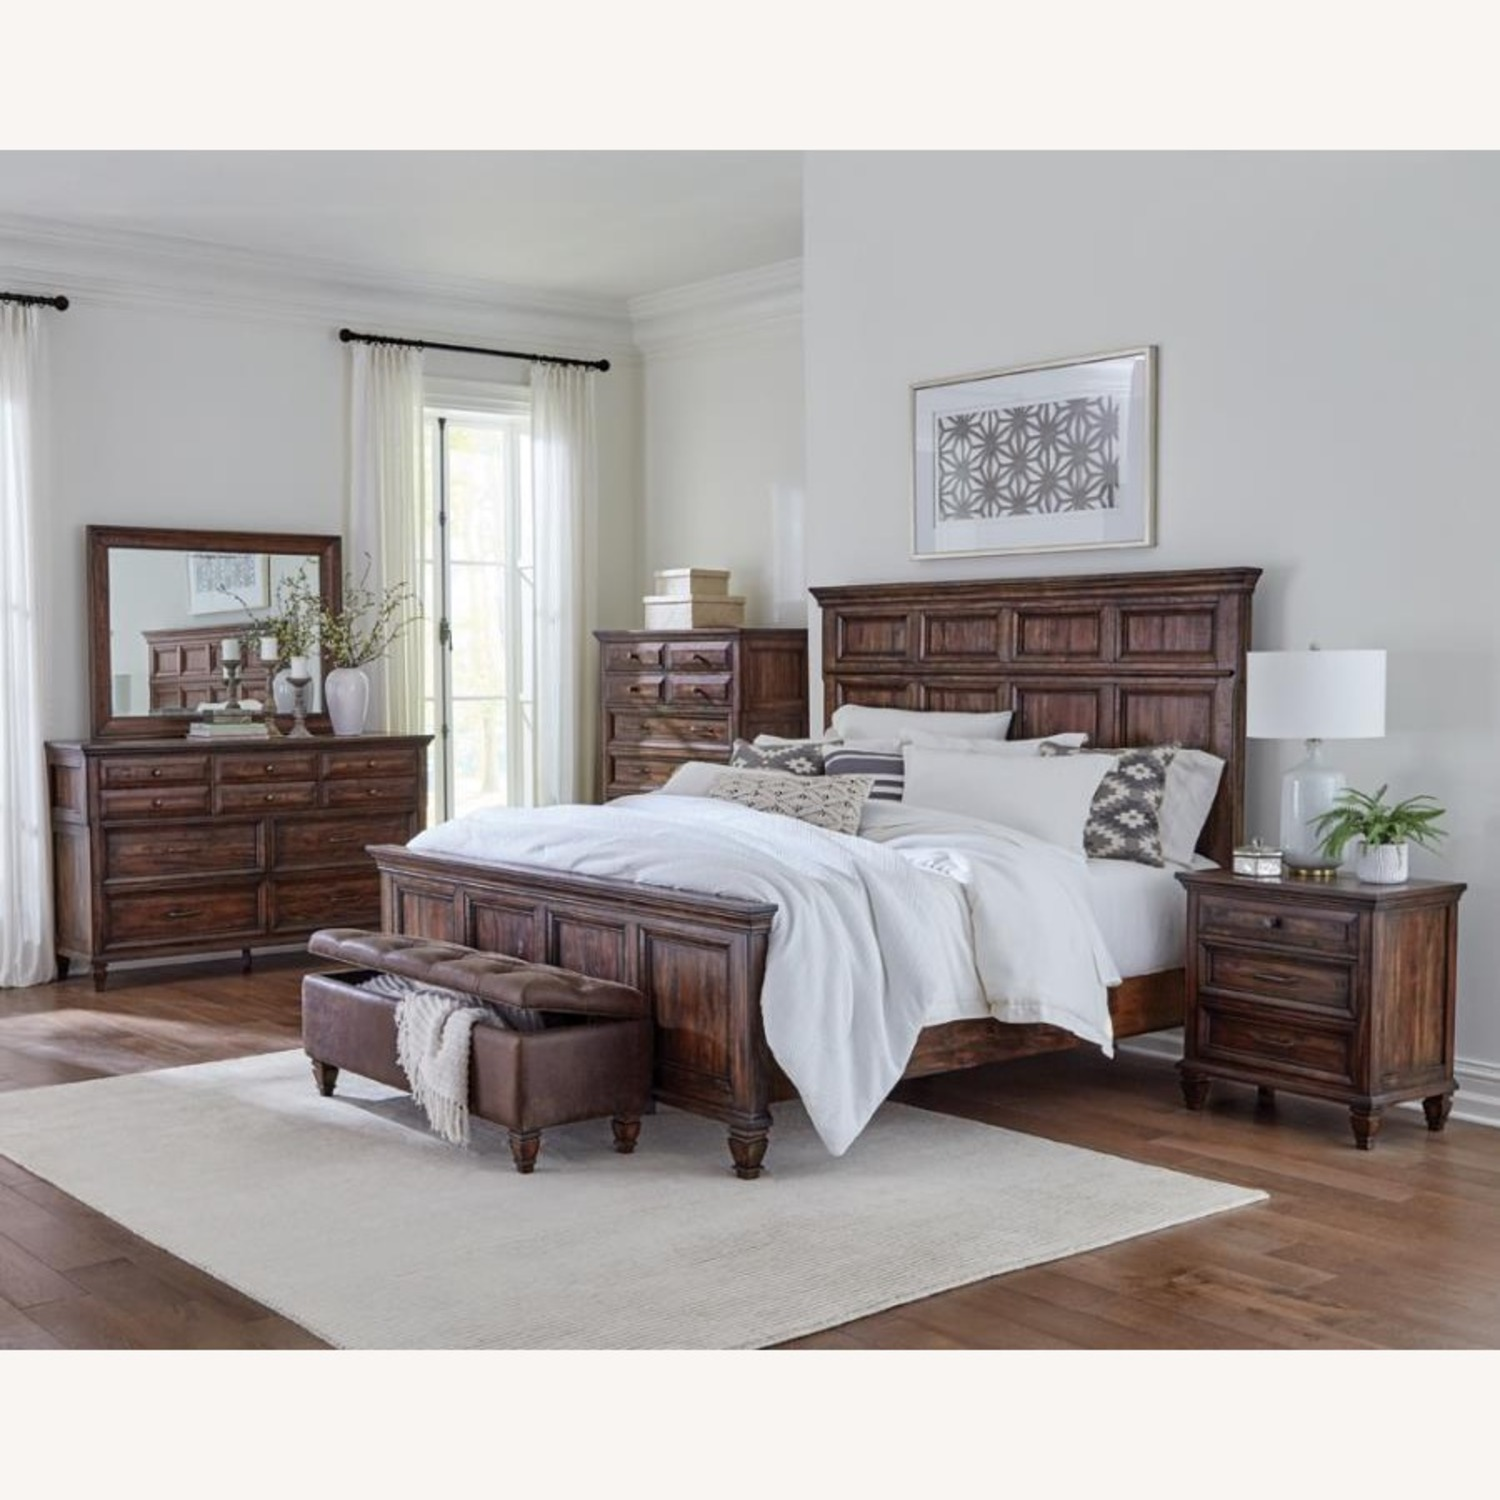 King Bed In Weathered Brown Finish - image-2